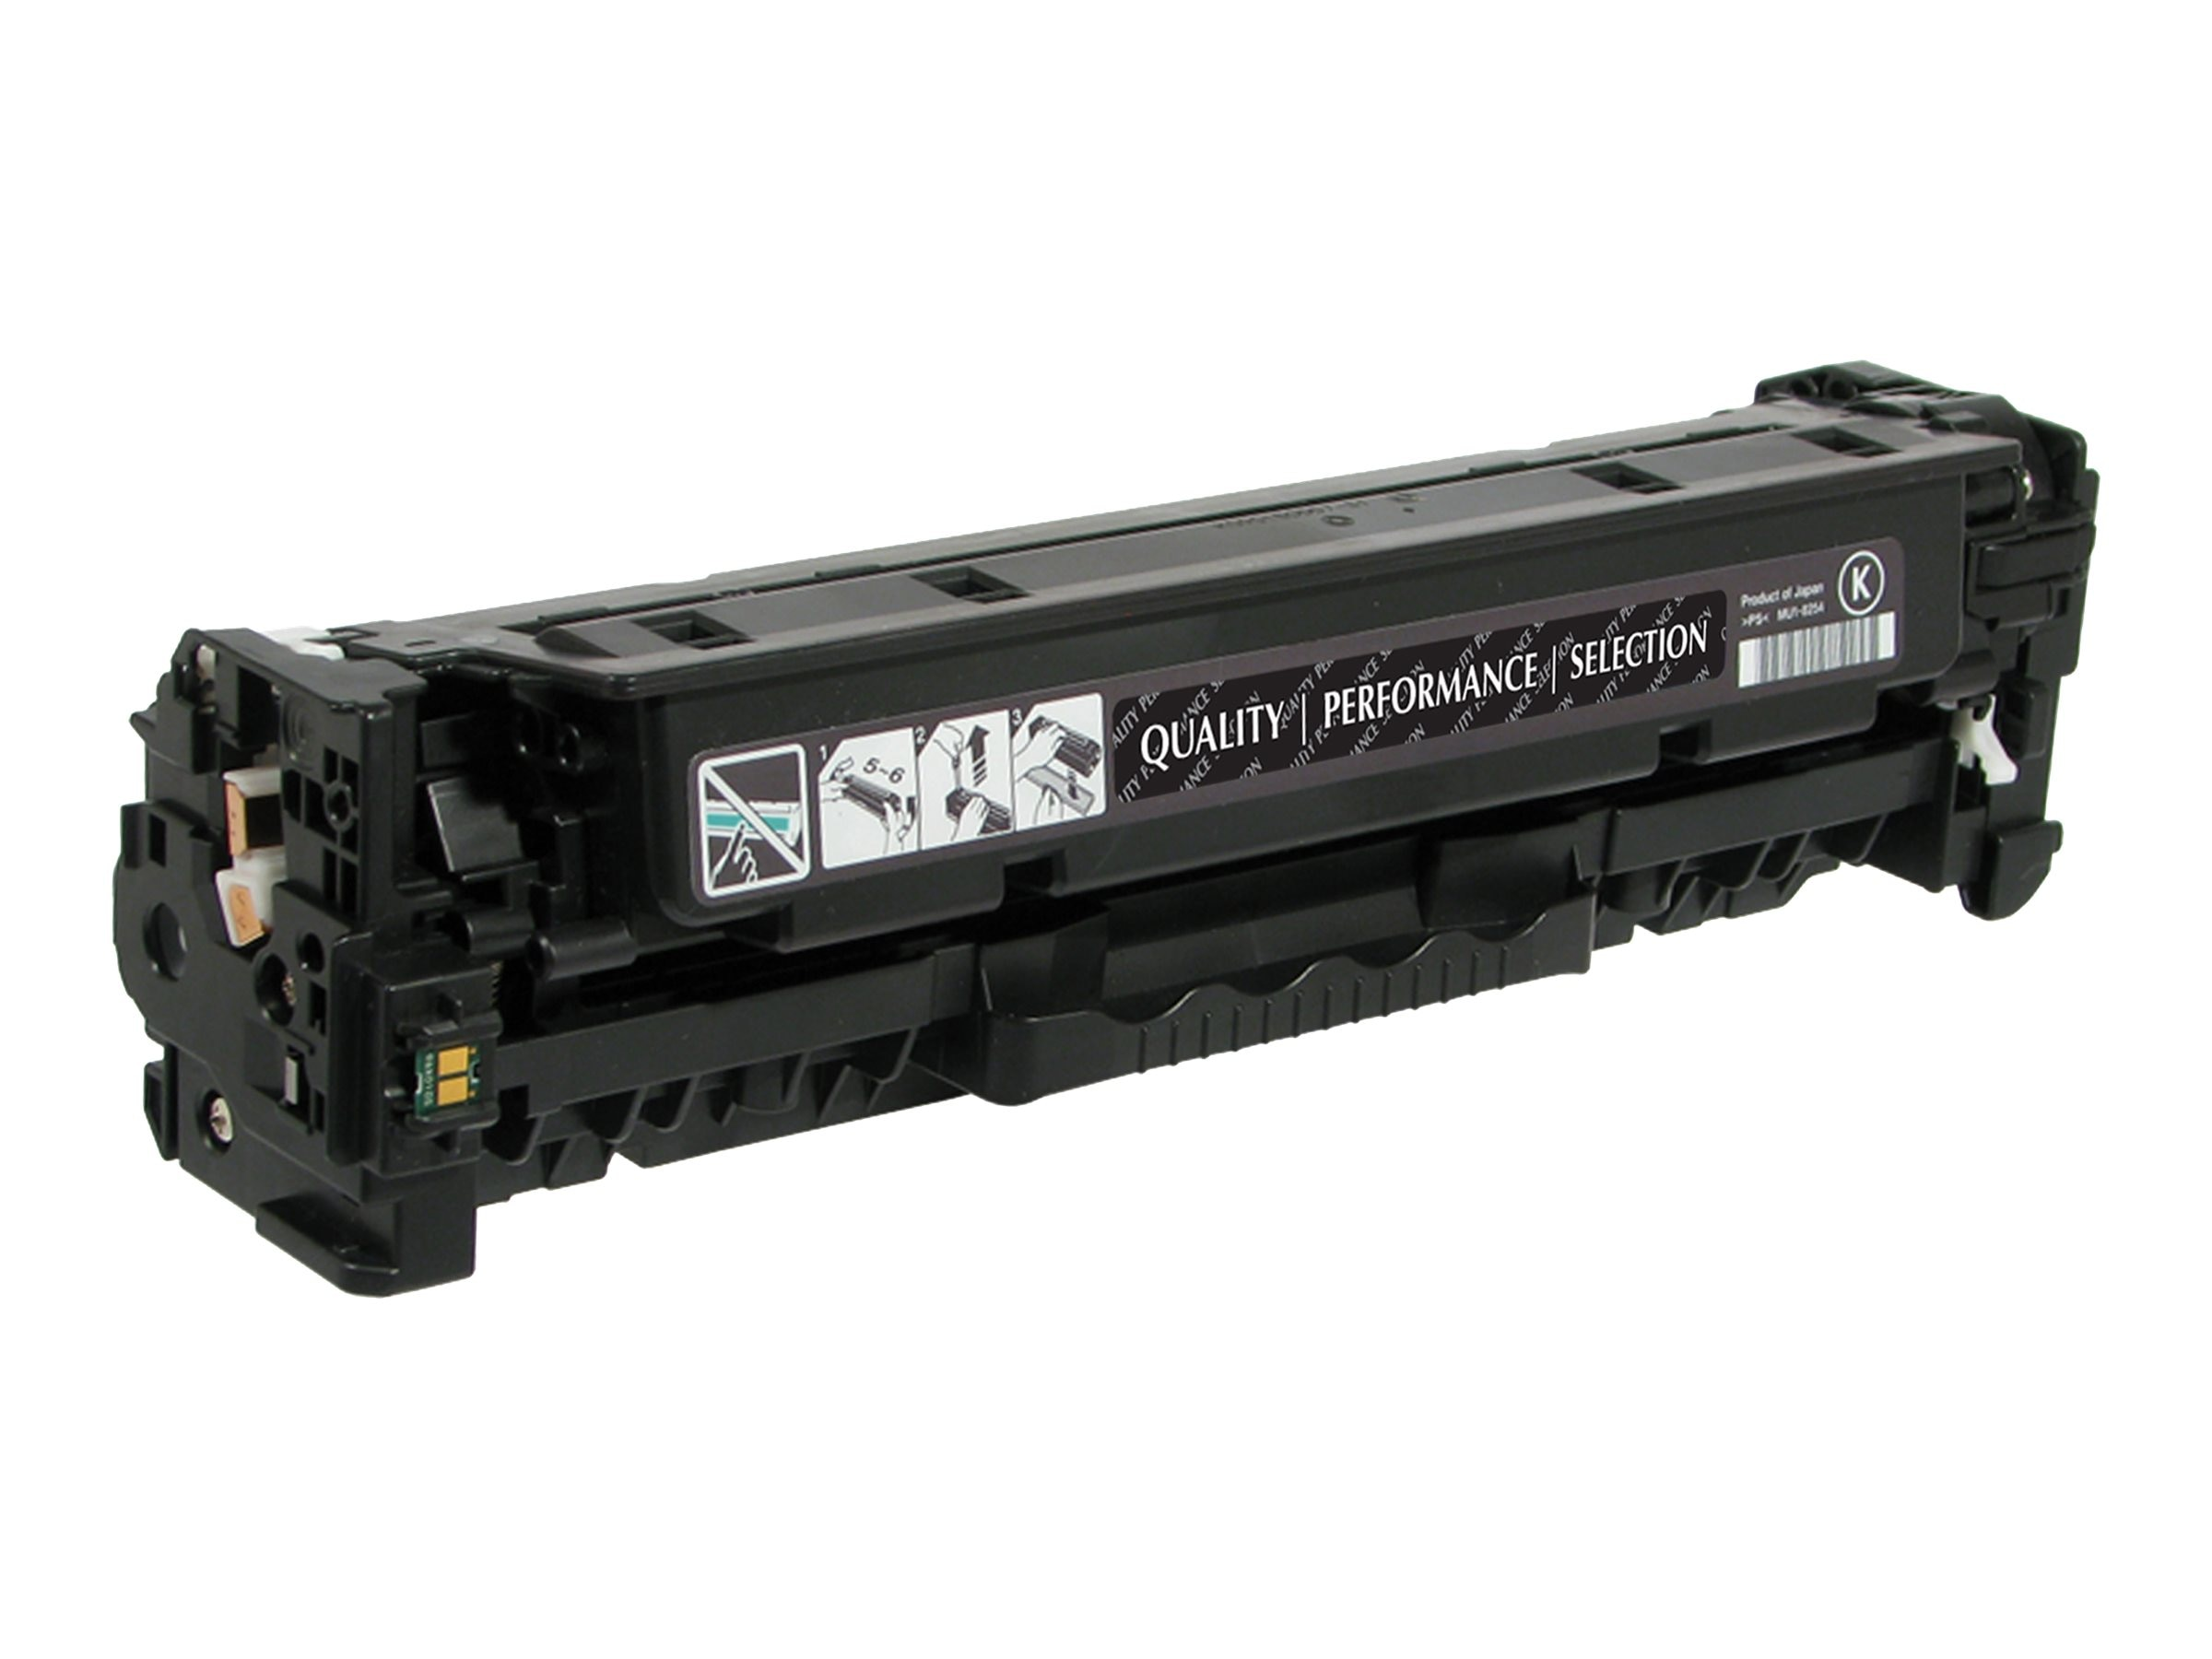 V7 CE410X Black High Yield Toner Cartridge for HP LaserJet Pro Color M375 M451